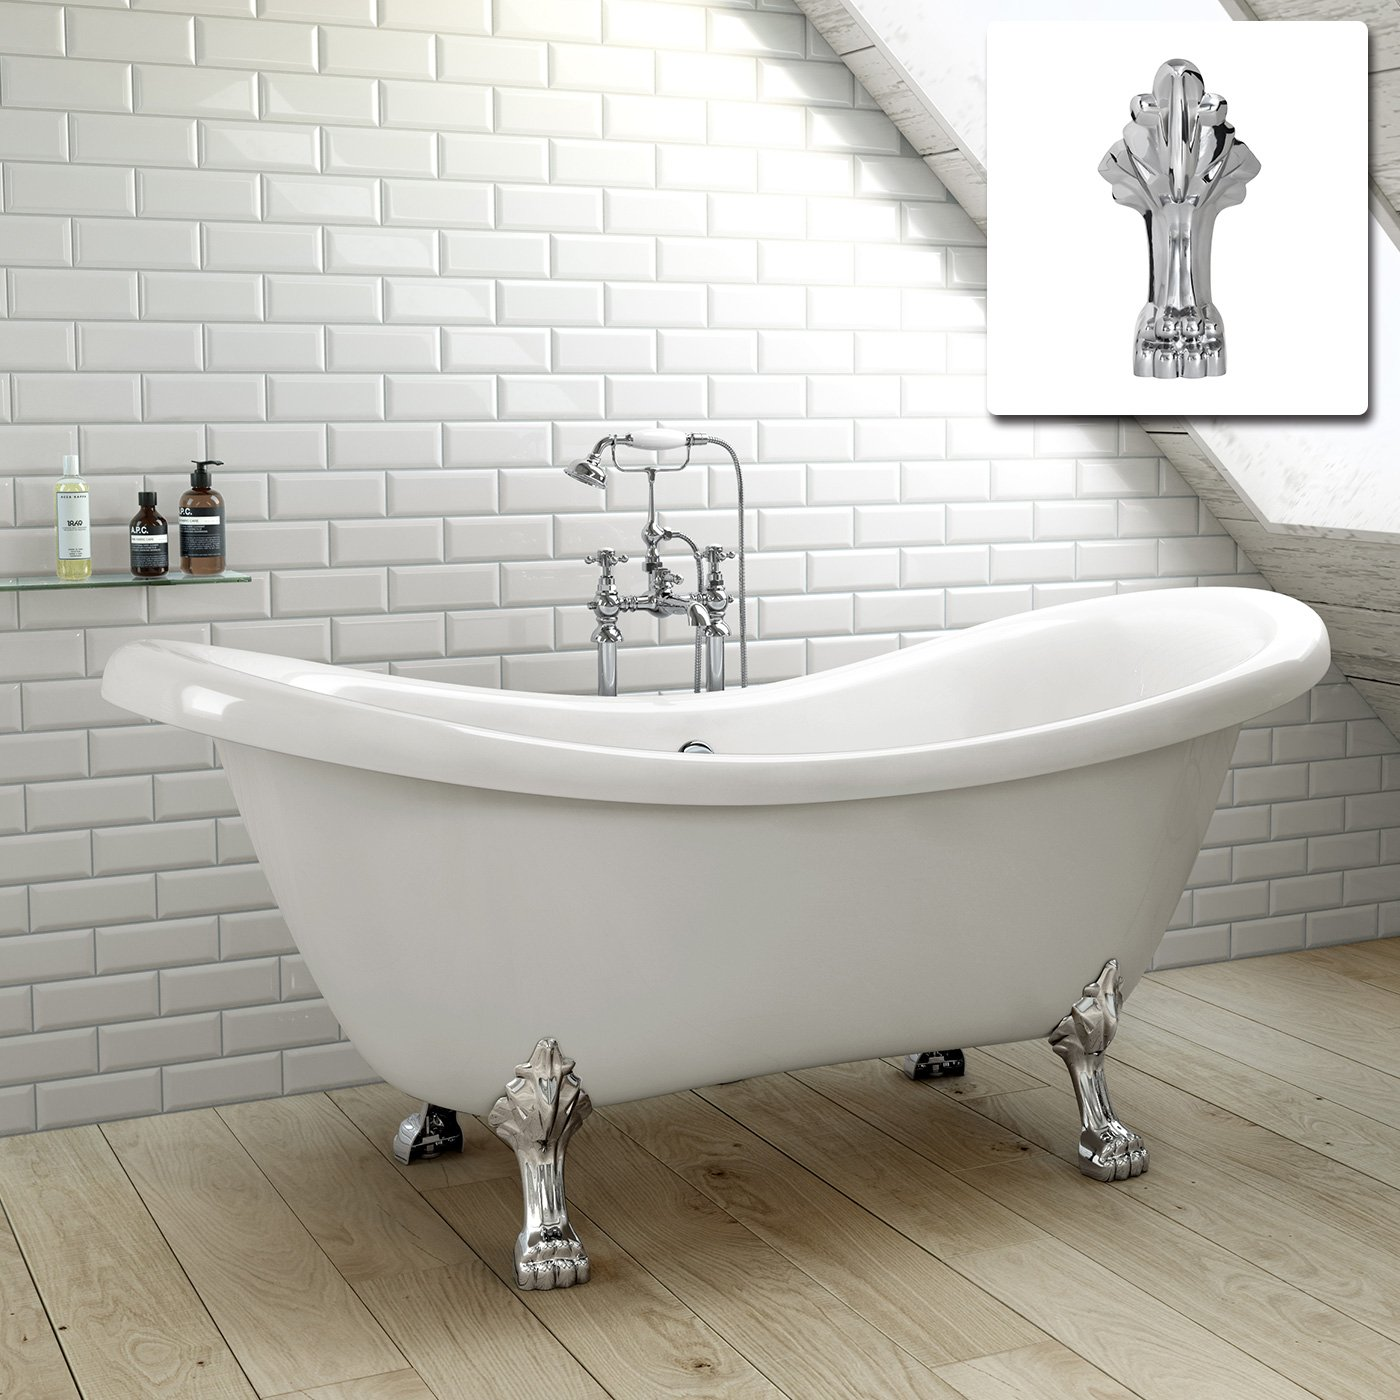 iBahtUK | Traditional Roll Top Double Slipper Bath Freestanding ...